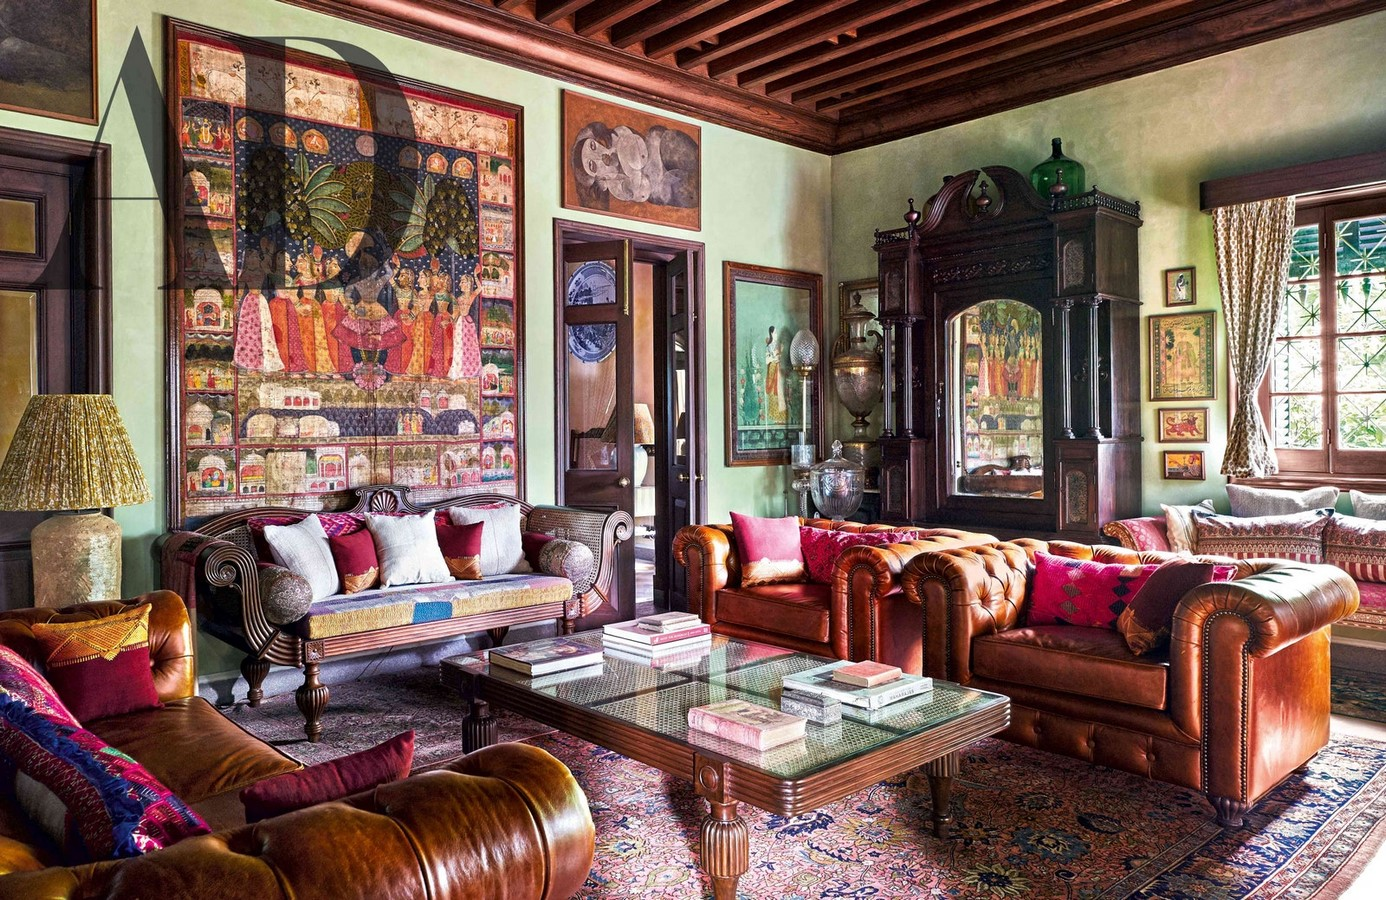 Sabyasachi Mukherjee's Mansion, Calcutta, India